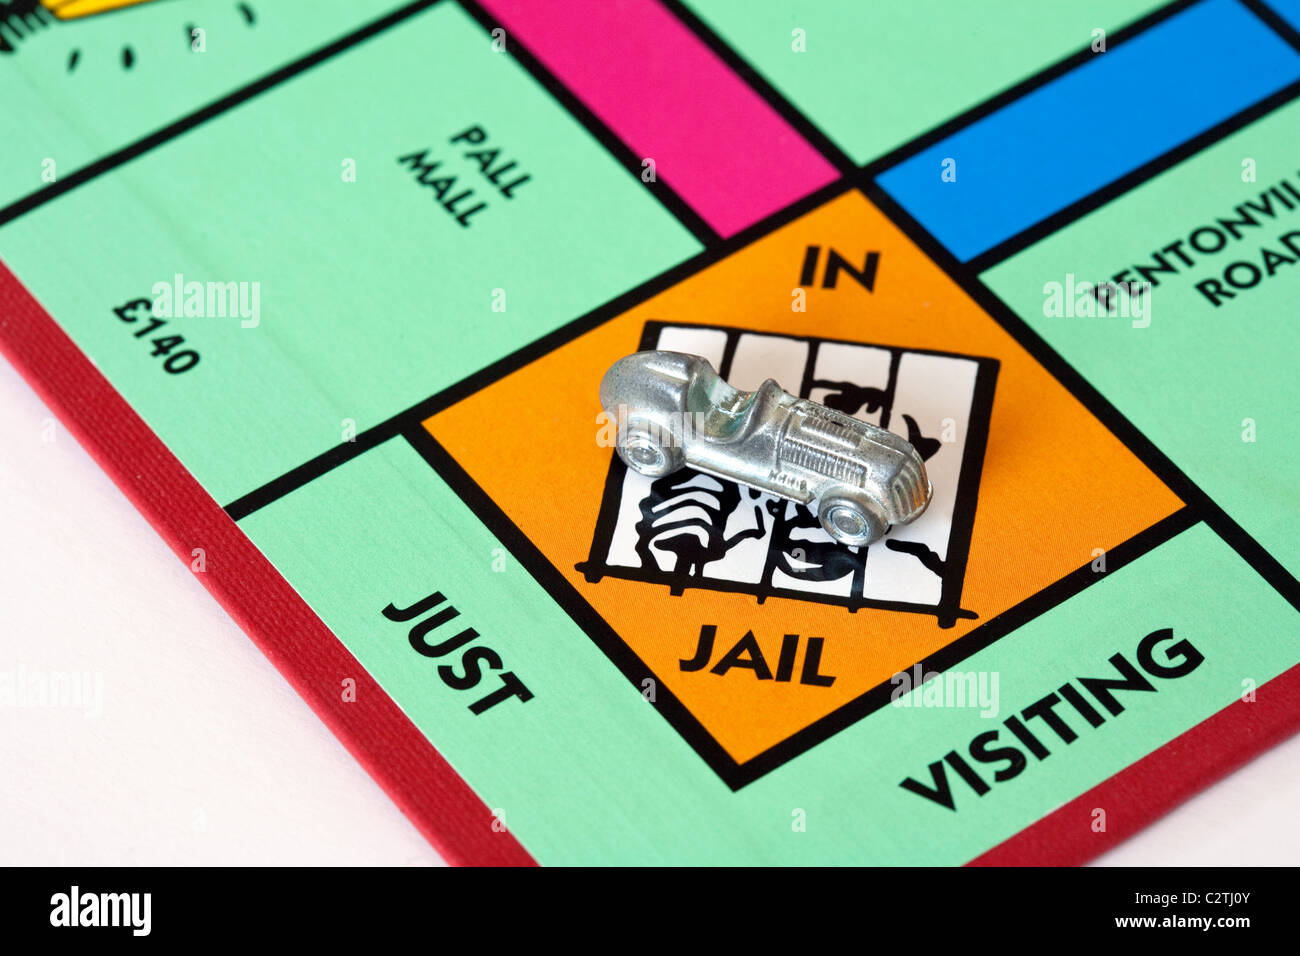 A car piece in Jail on a monopoly game board UK - Stock Image